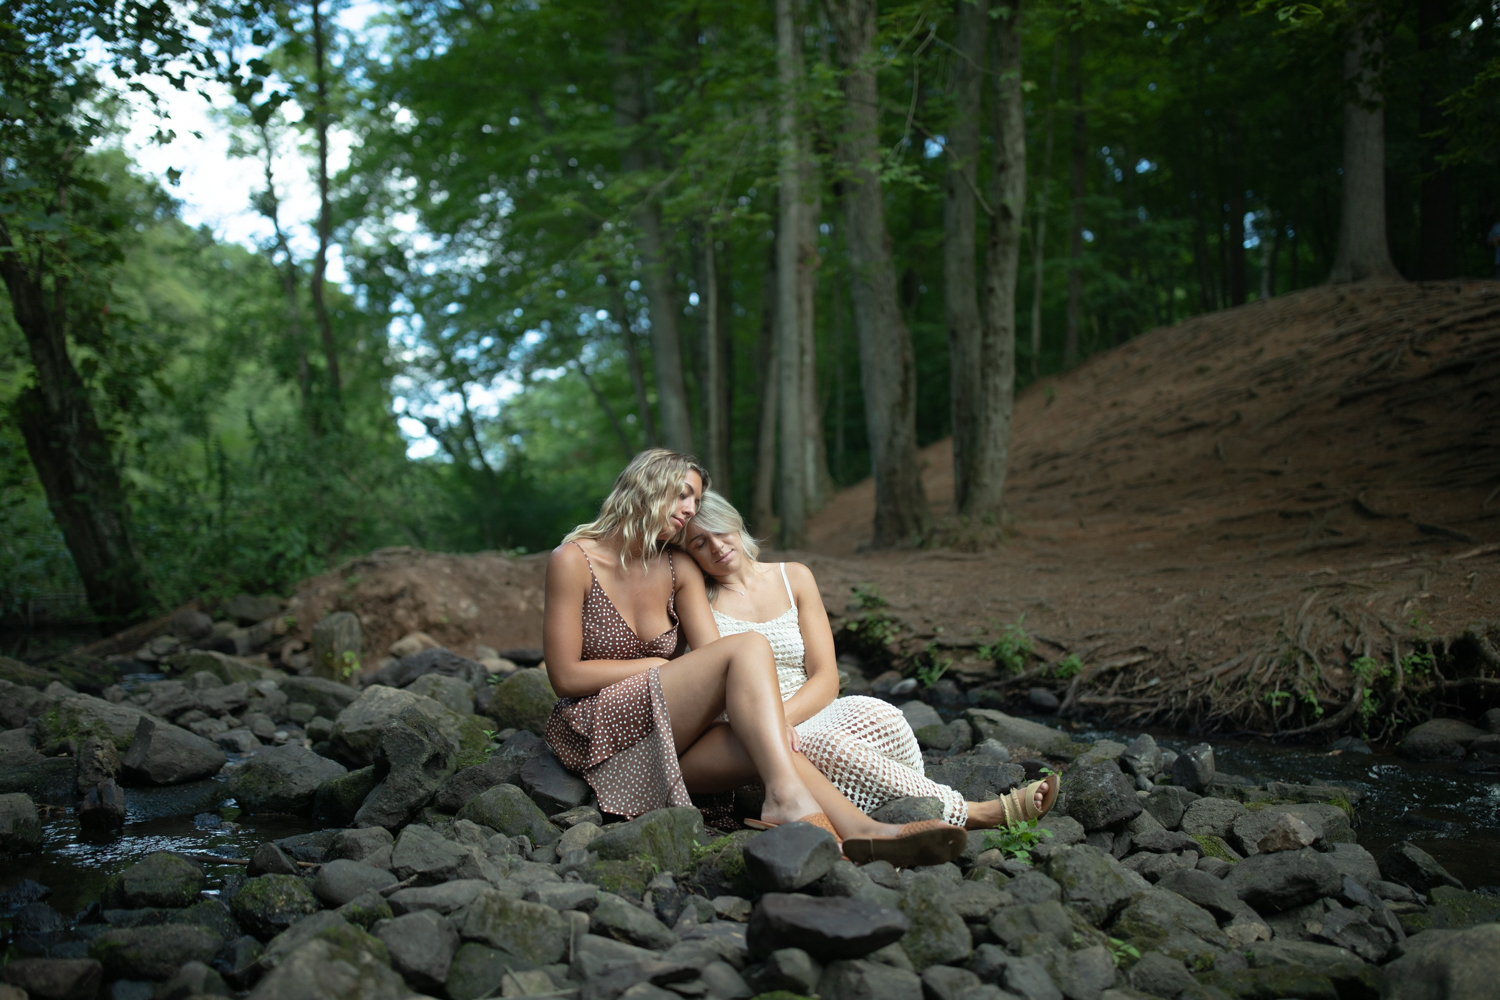 An unedited photo of a couple that cuddles while sitting on rocks in a forest.